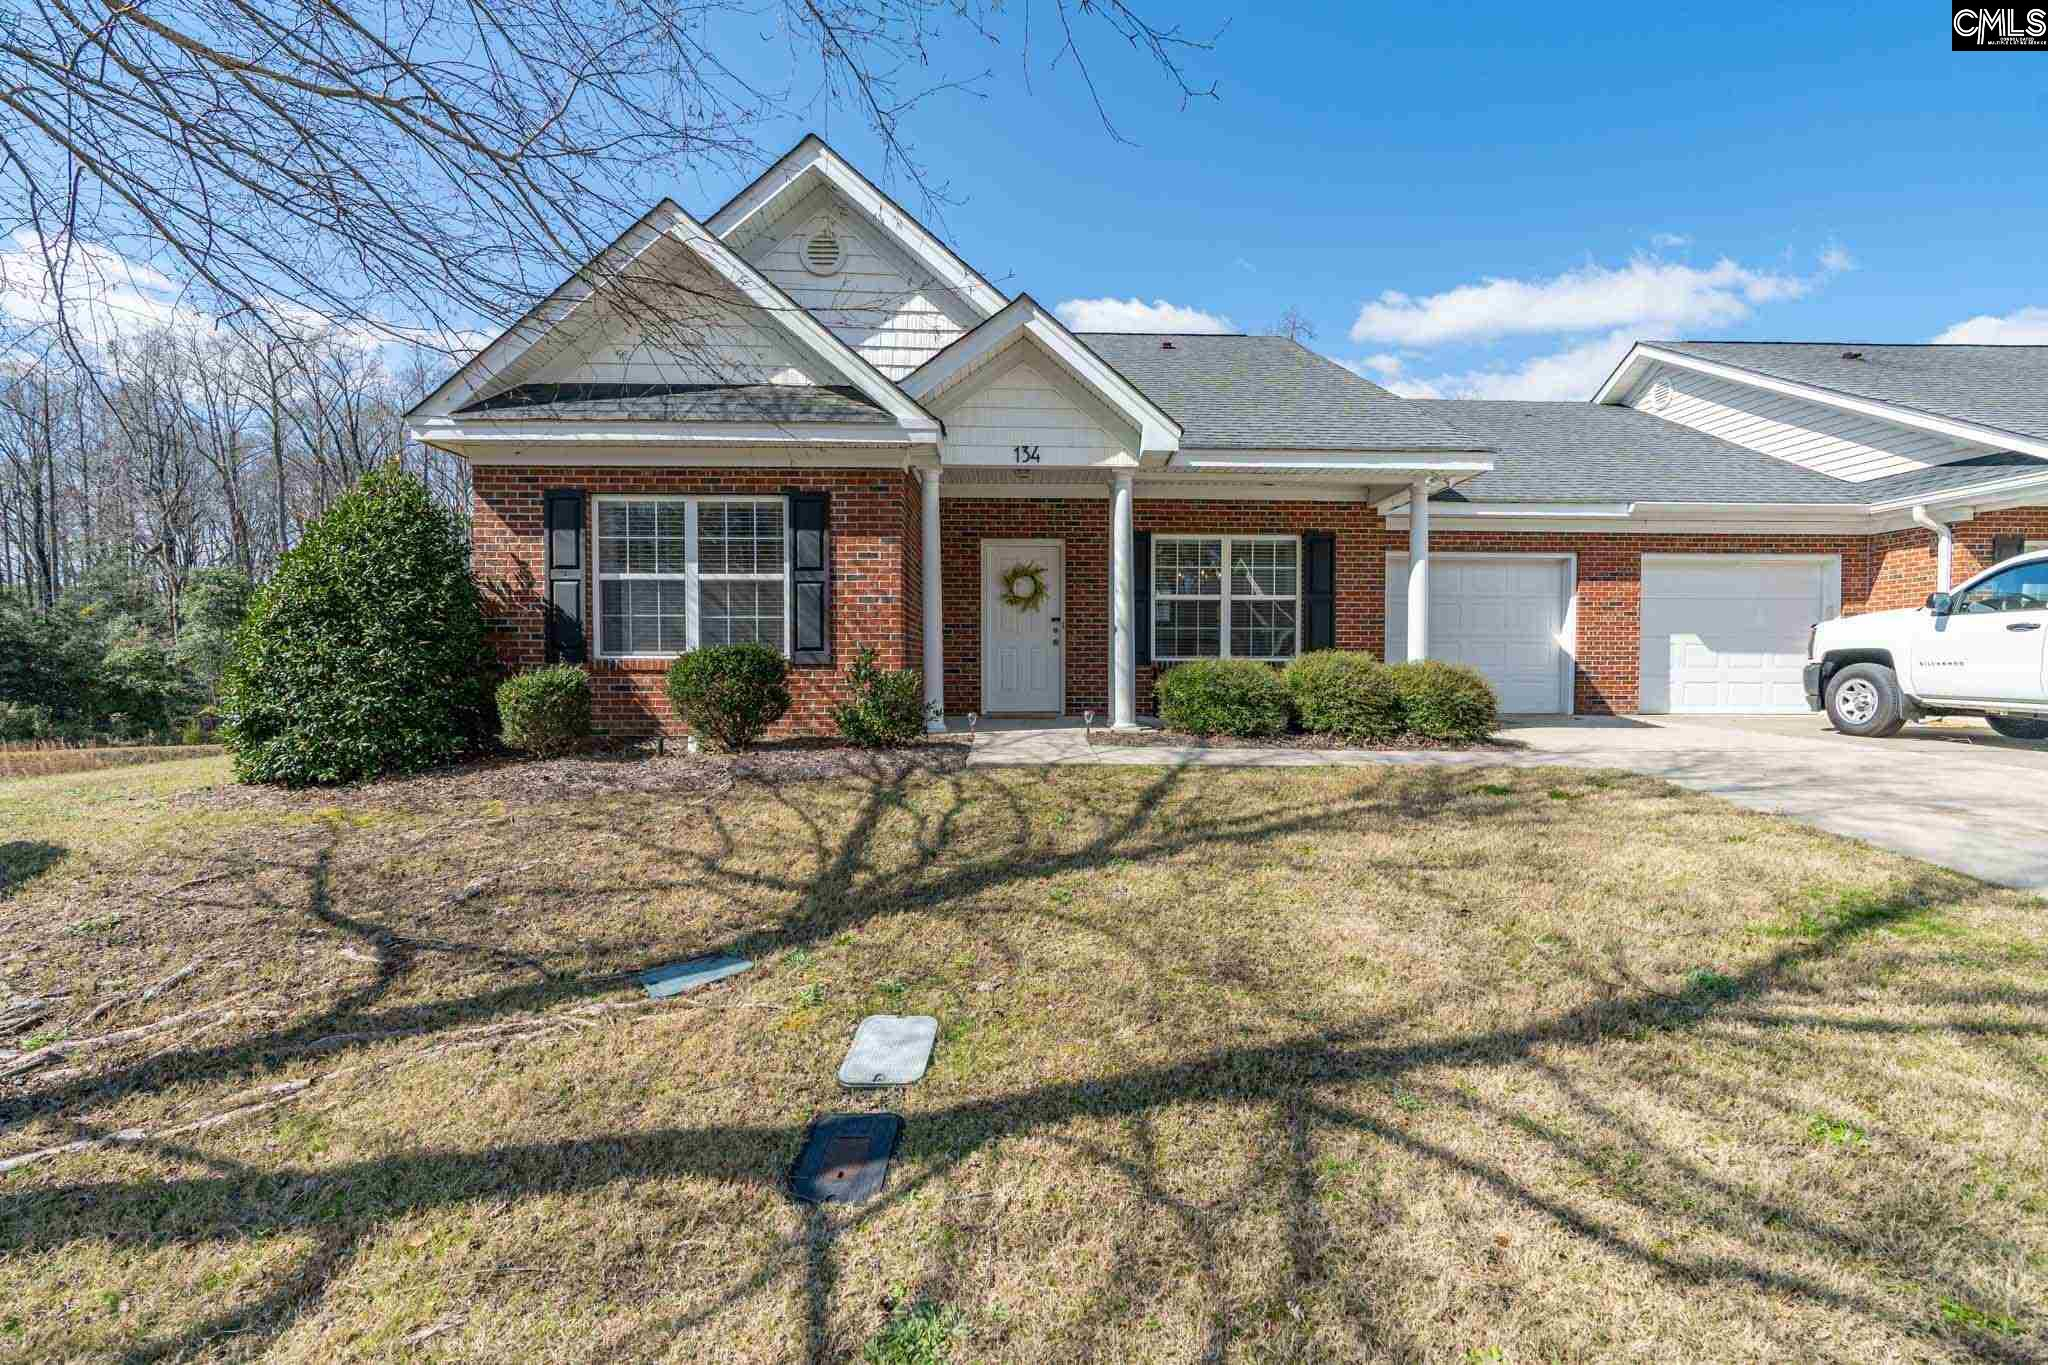 134 Vista Oaks Lexington, SC 29072-8229